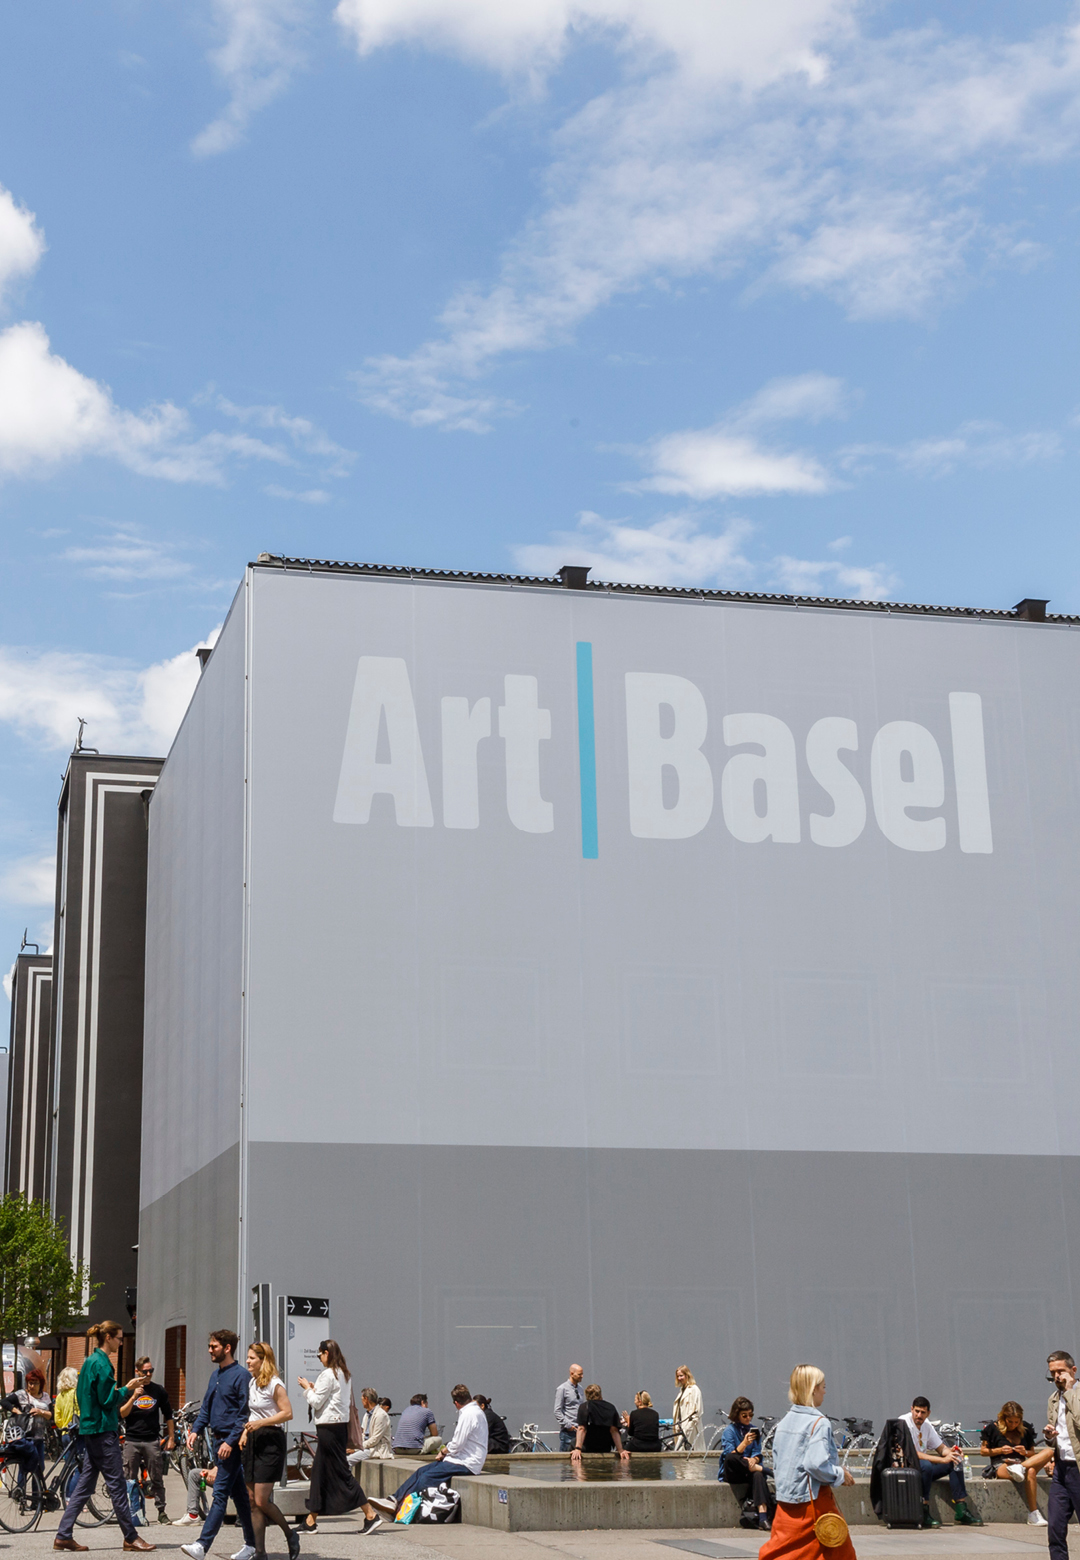 General view of Art Basel 2019, Switzerland| Art Basel| Switzerland| STIR